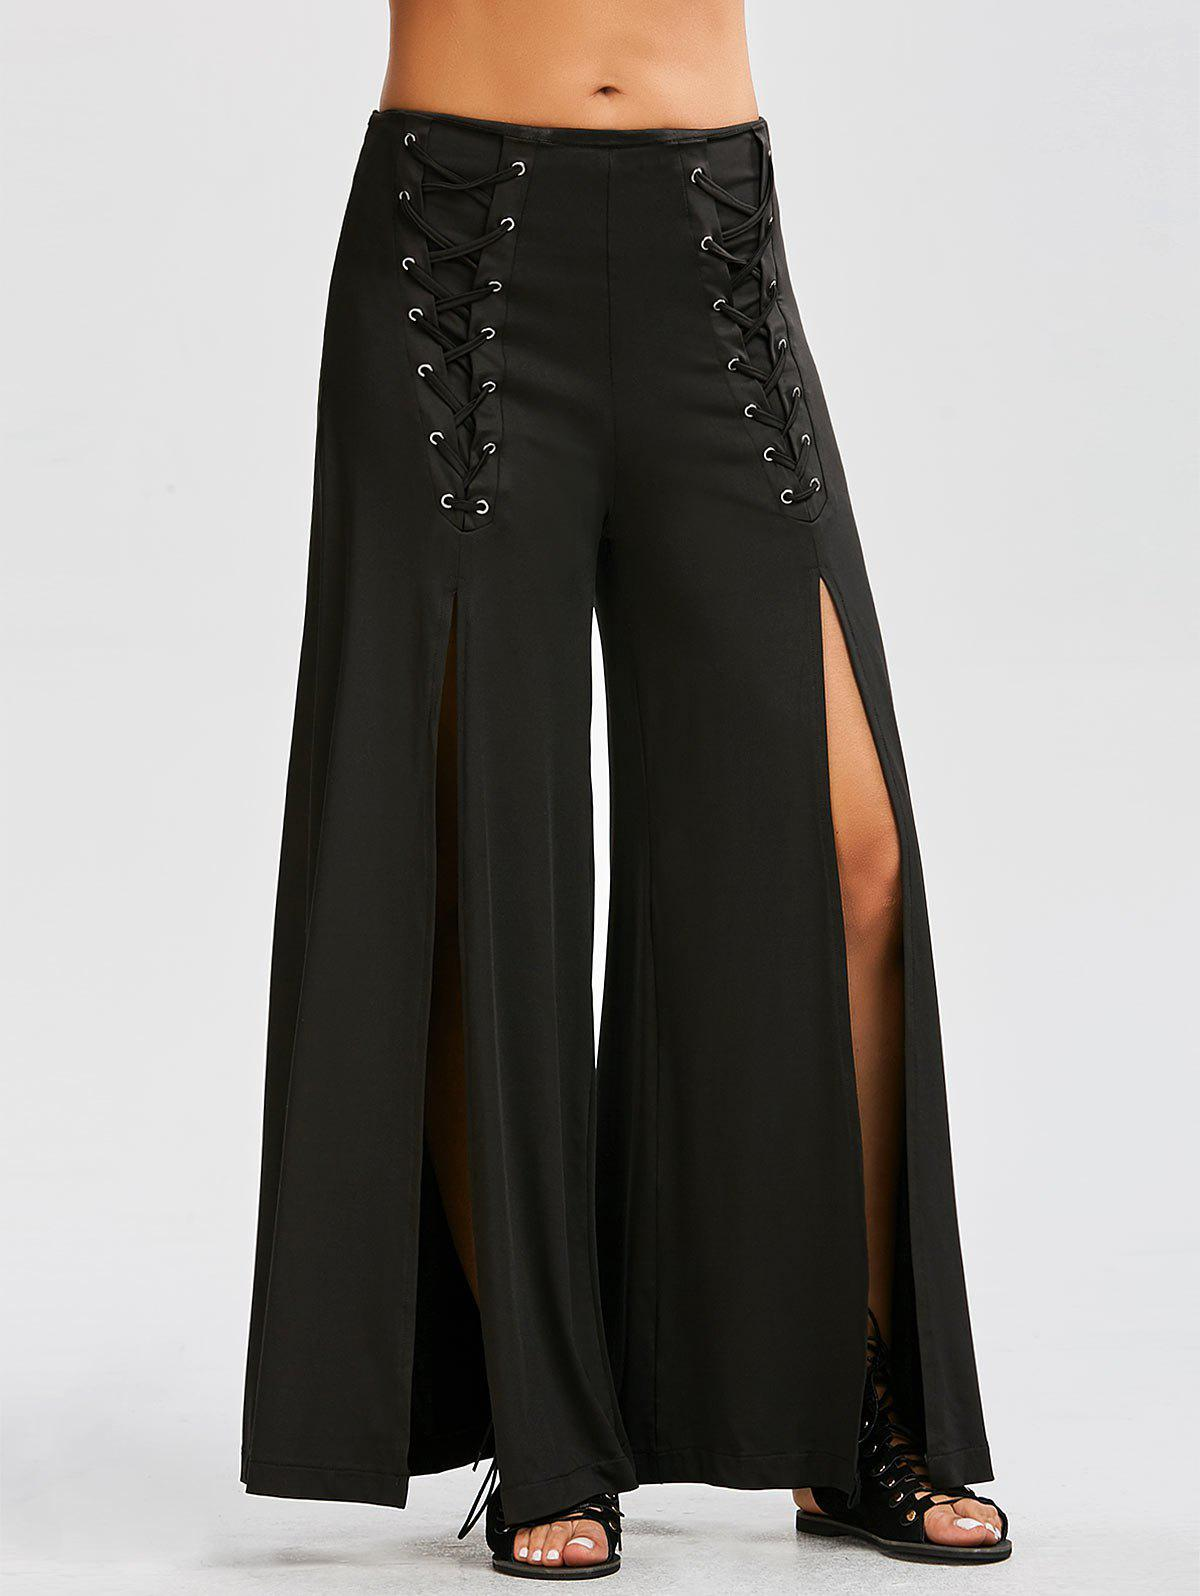 Lace Up High Slit Wide Leg Pants - BLACK M